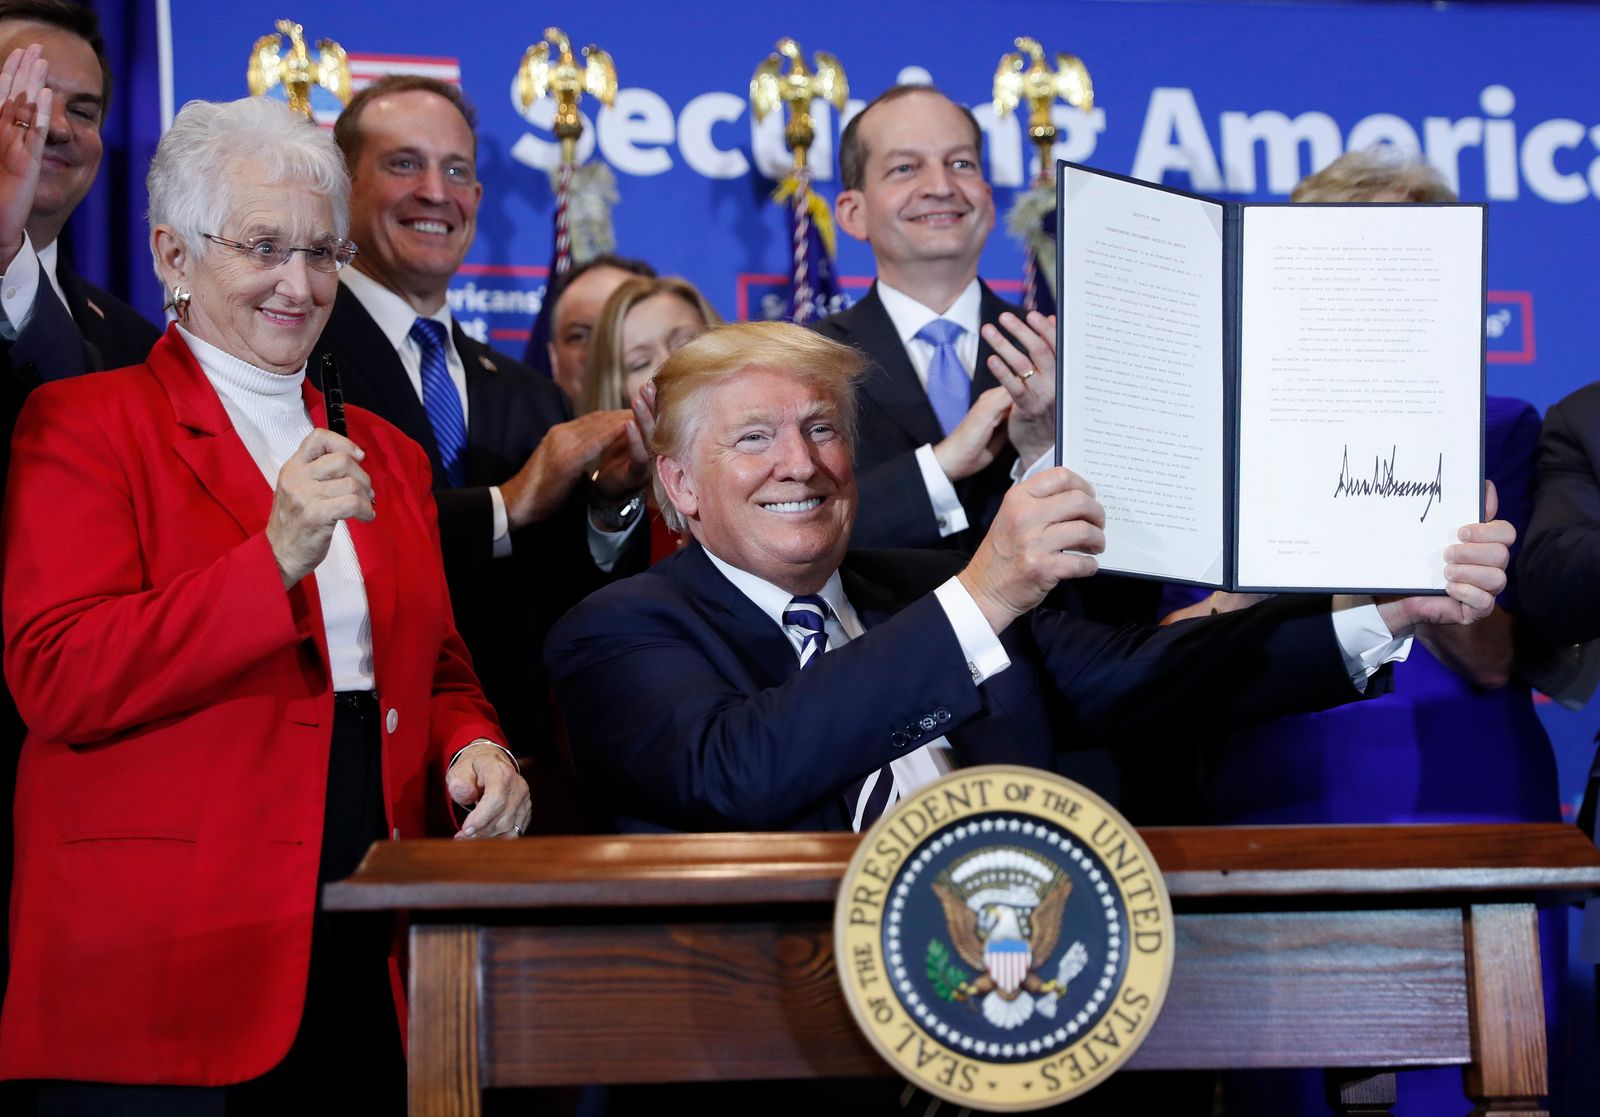 FILE - In this Aug. 31, 2018, file photo, President Donald Trump holds up a signed executive order on stage at the Harris Conference Center in Charlotte, N.C. The executive order is to make it easier for small businesses to group together to provide their workers with retirement plans. On the left is Rep. Virginia Foxx, R-N.C. Trump is now three for three. Each year of his presidency, he has issued more executive orders than did former President Barack Obama during the same time-span. (AP Photo/Pablo Martinez Monsivais, File)